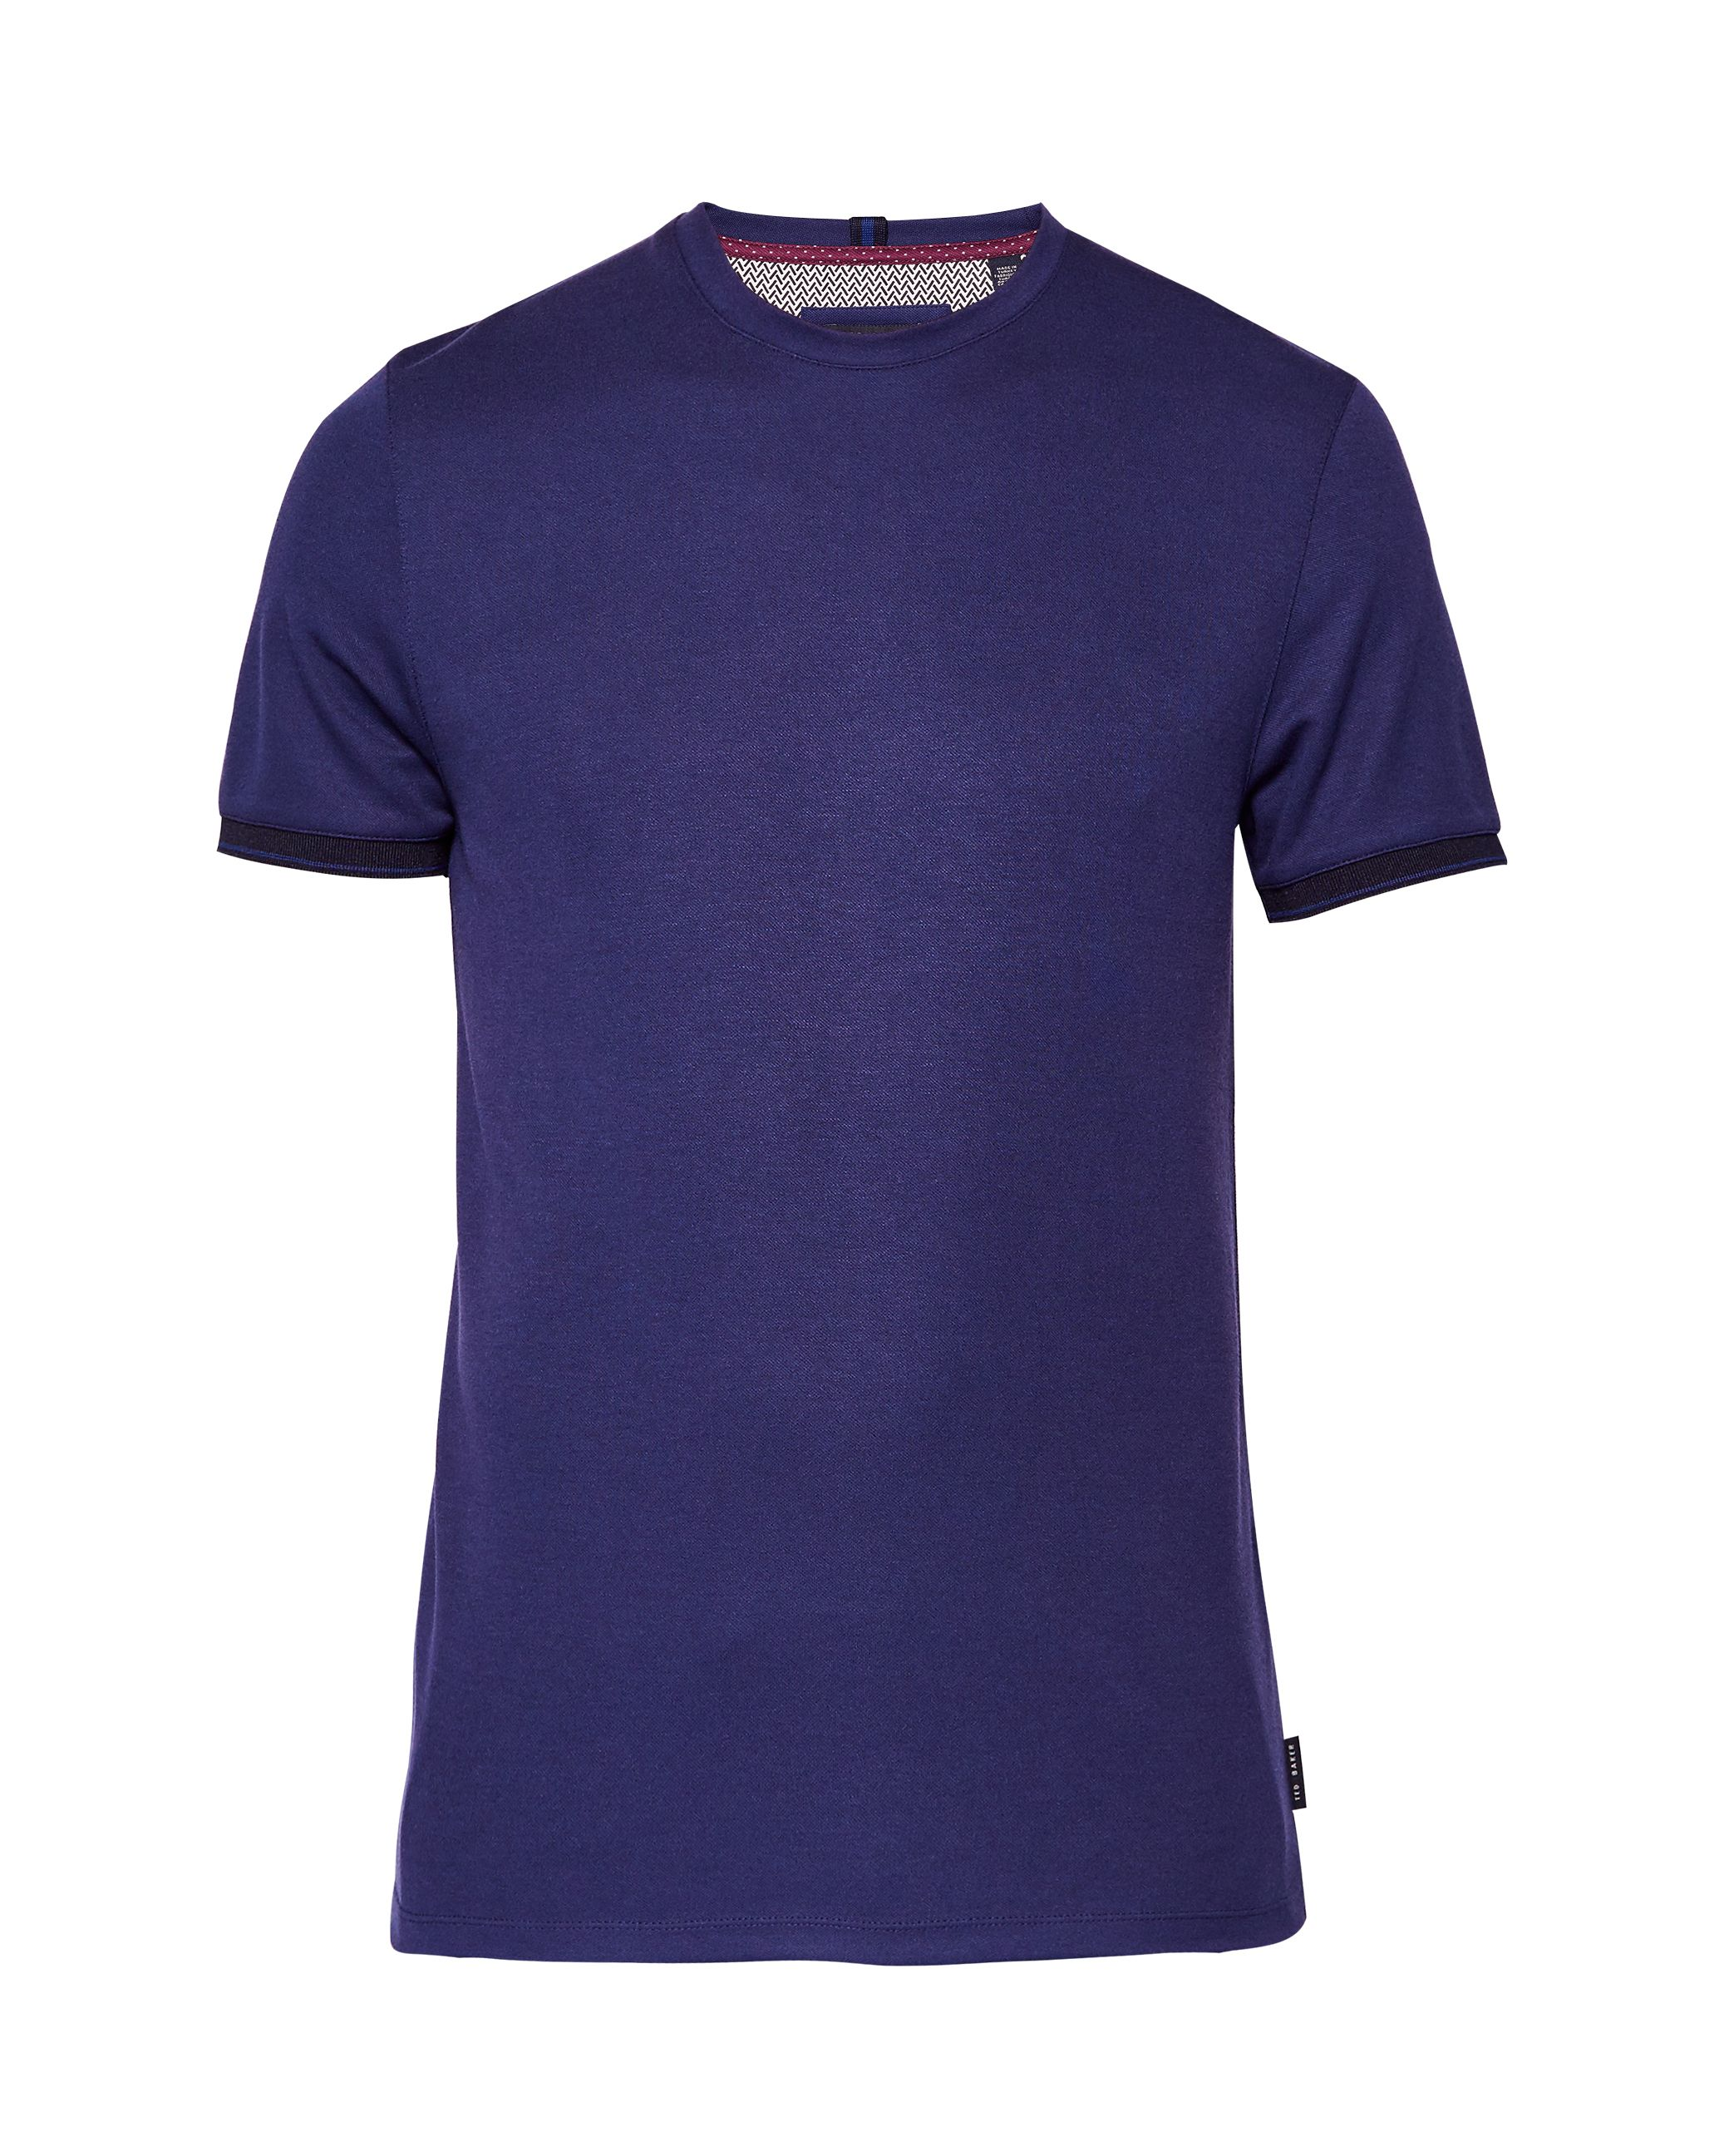 Men's Ted Baker Nanmoon Flat Knit Detail T-Shirt, Blue